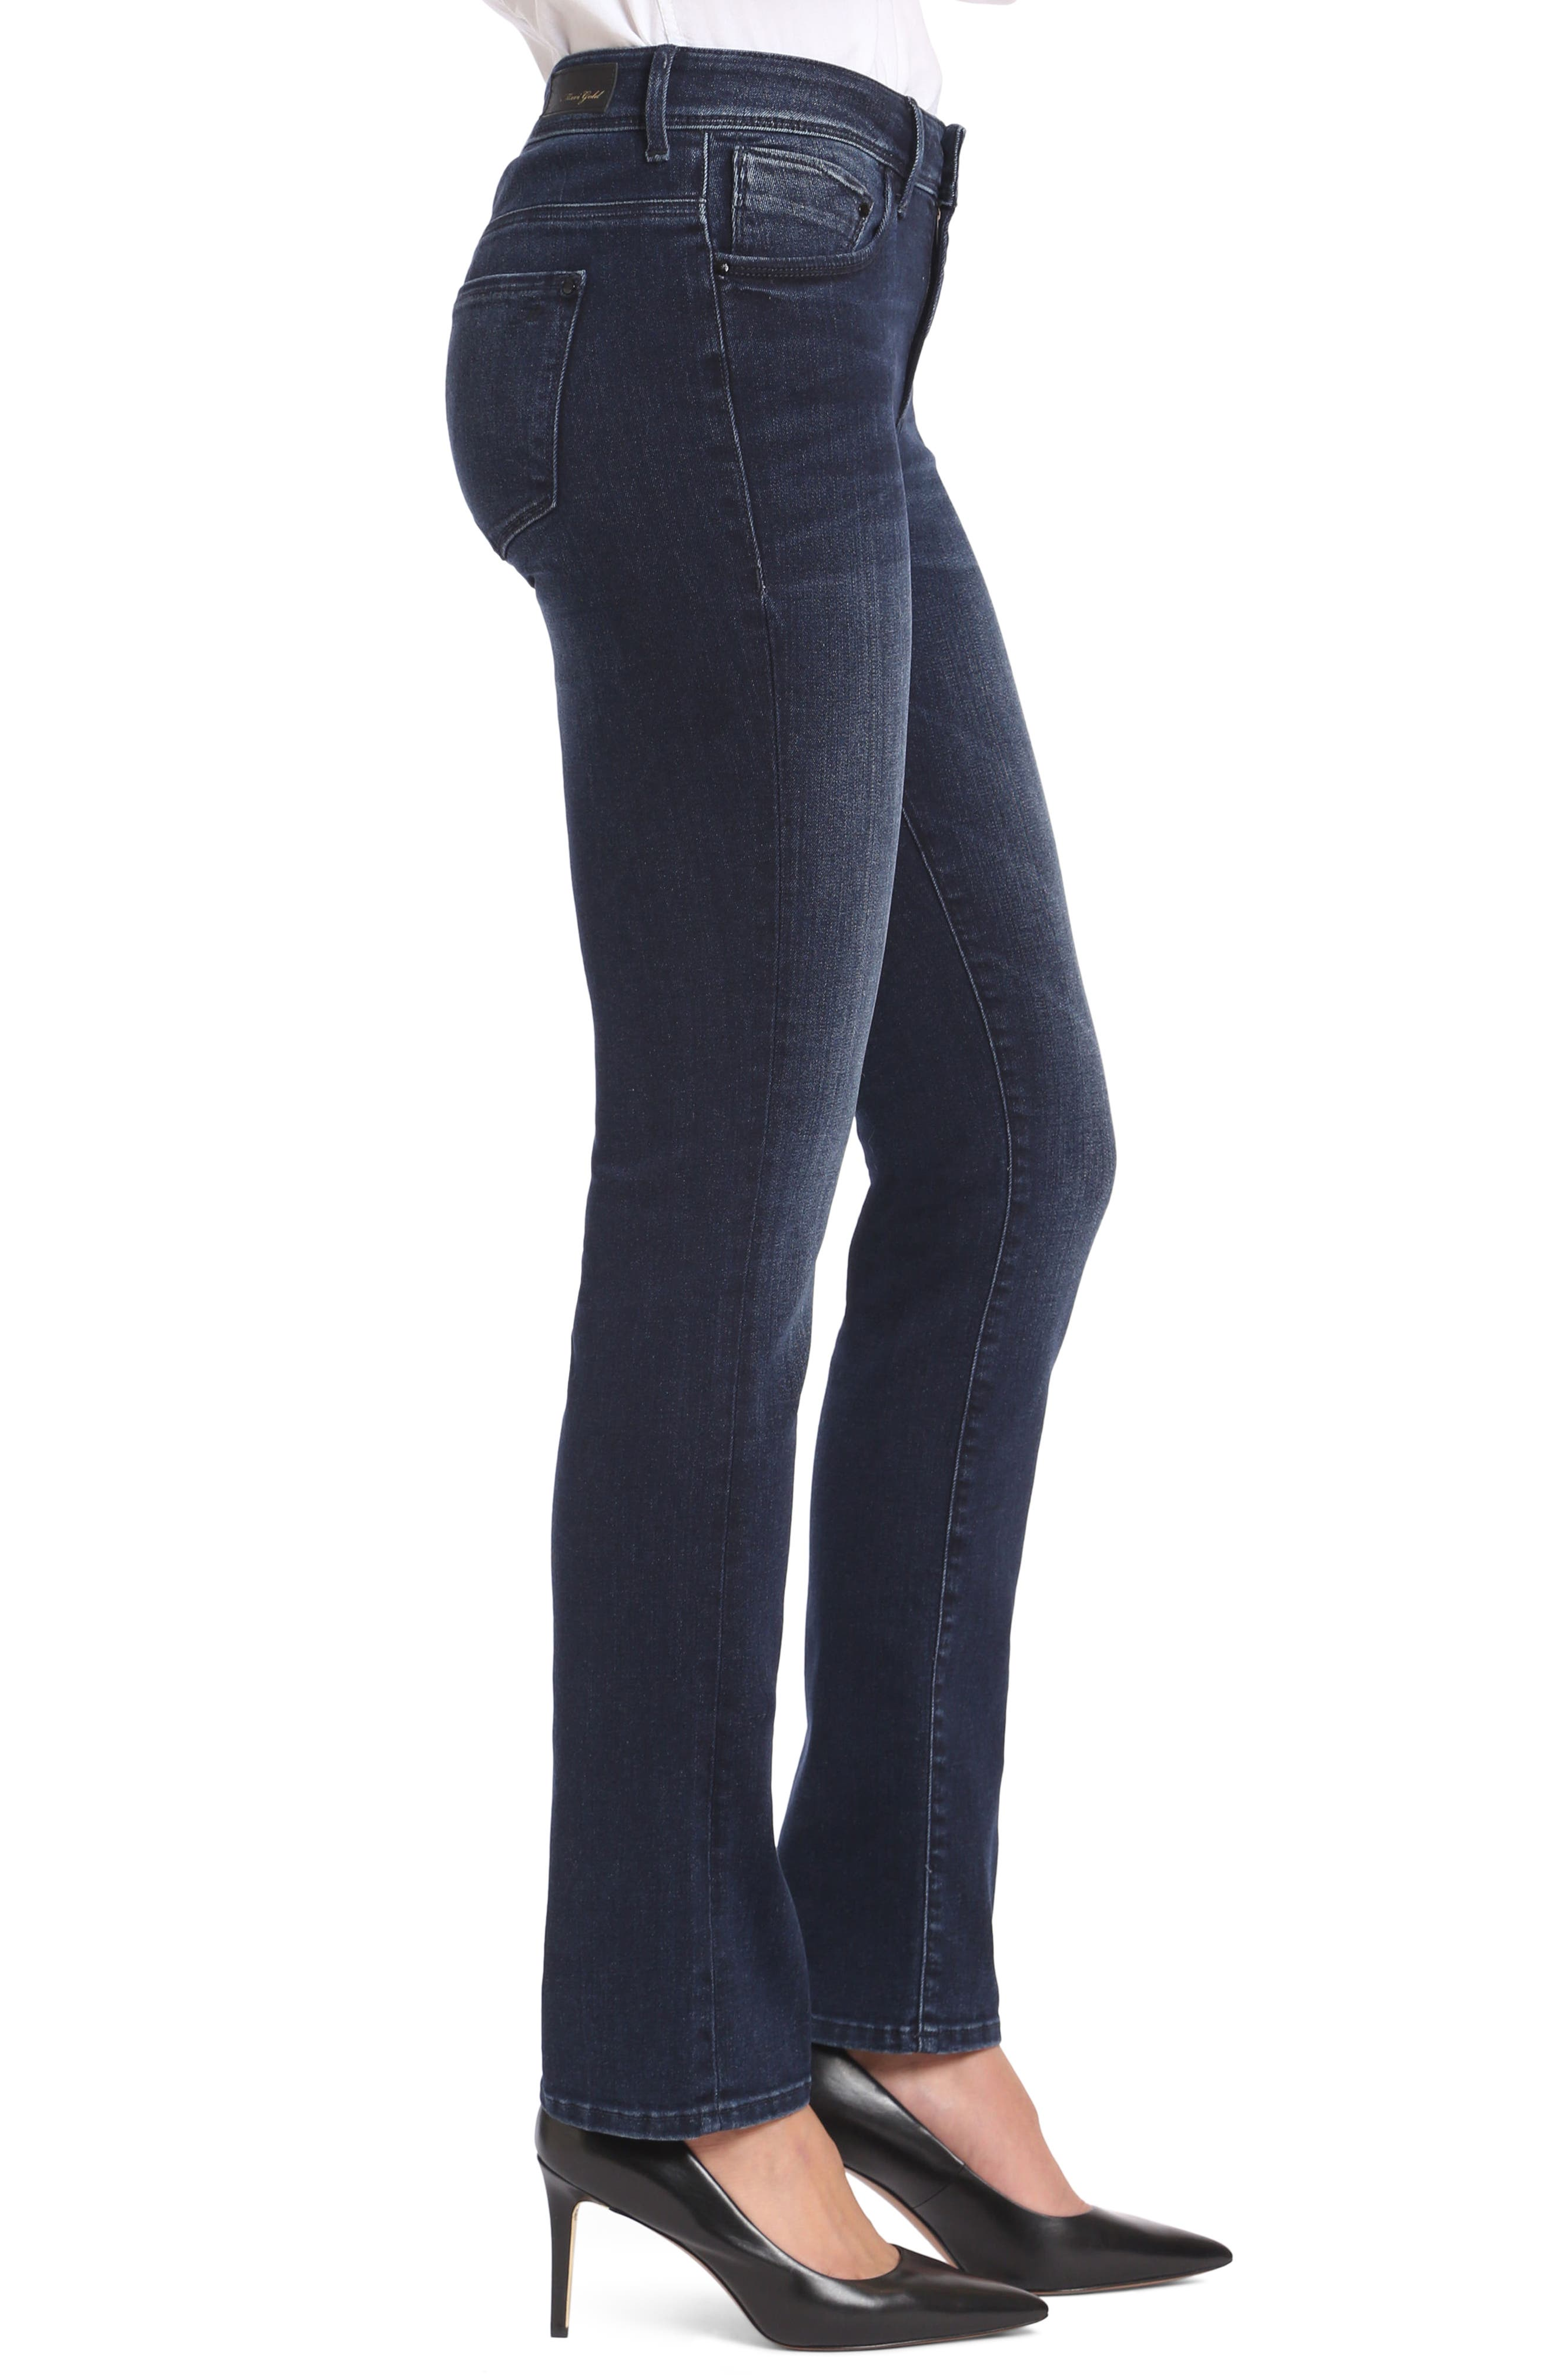 Kendra High Waist Straight Jeans,                             Alternate thumbnail 3, color,